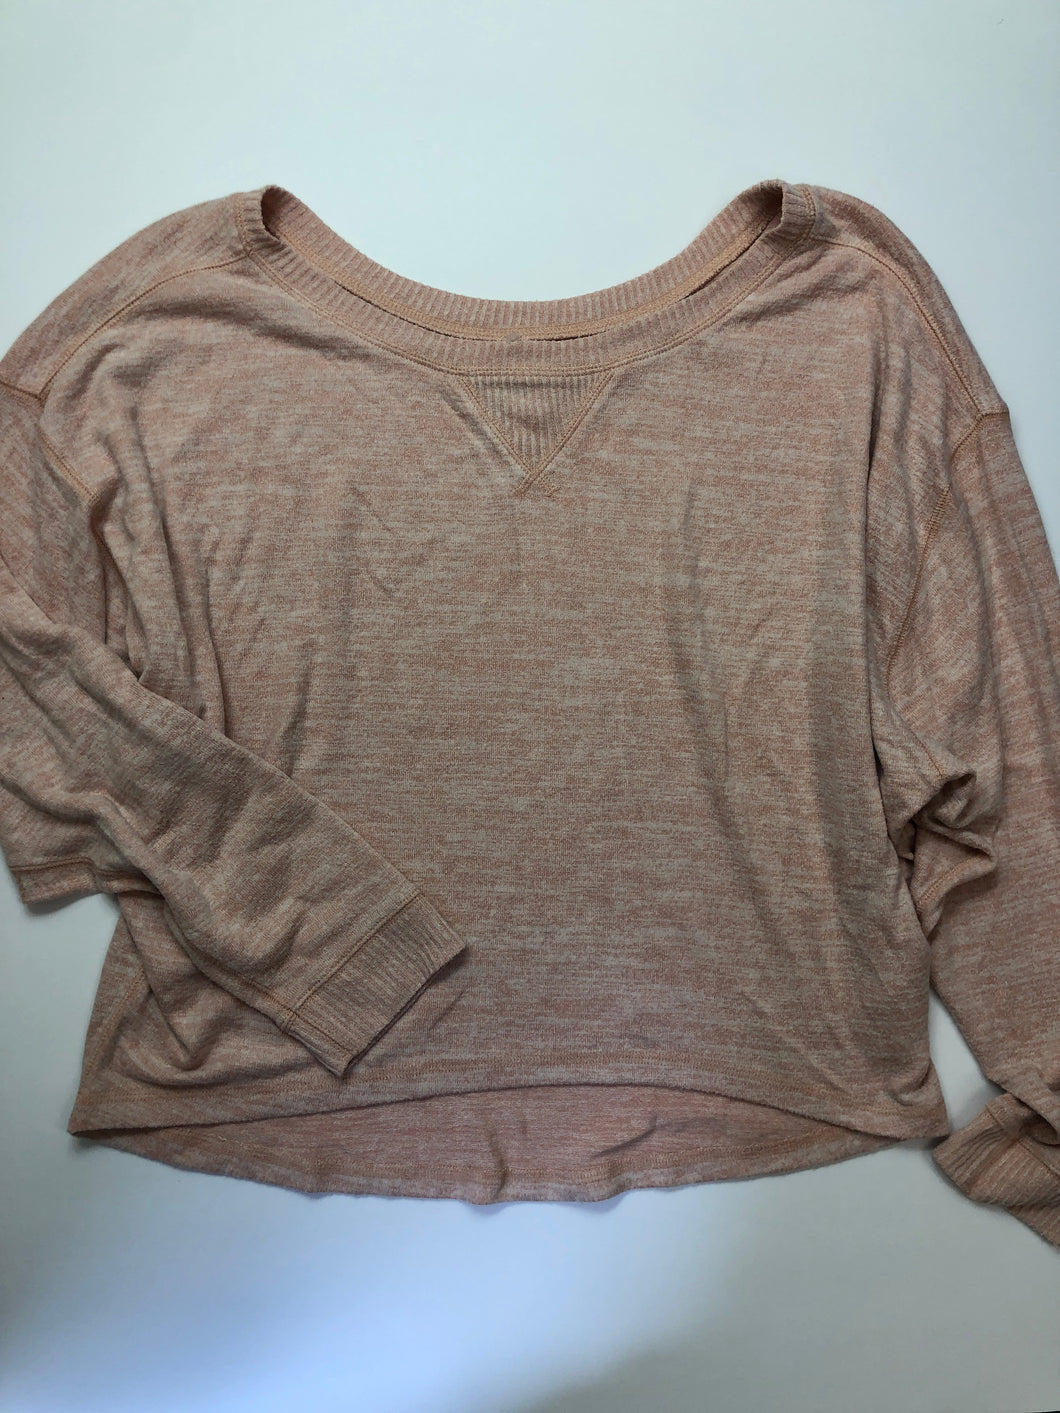 Gently Used Women's Abercrombie & Fitch Sweater Size S